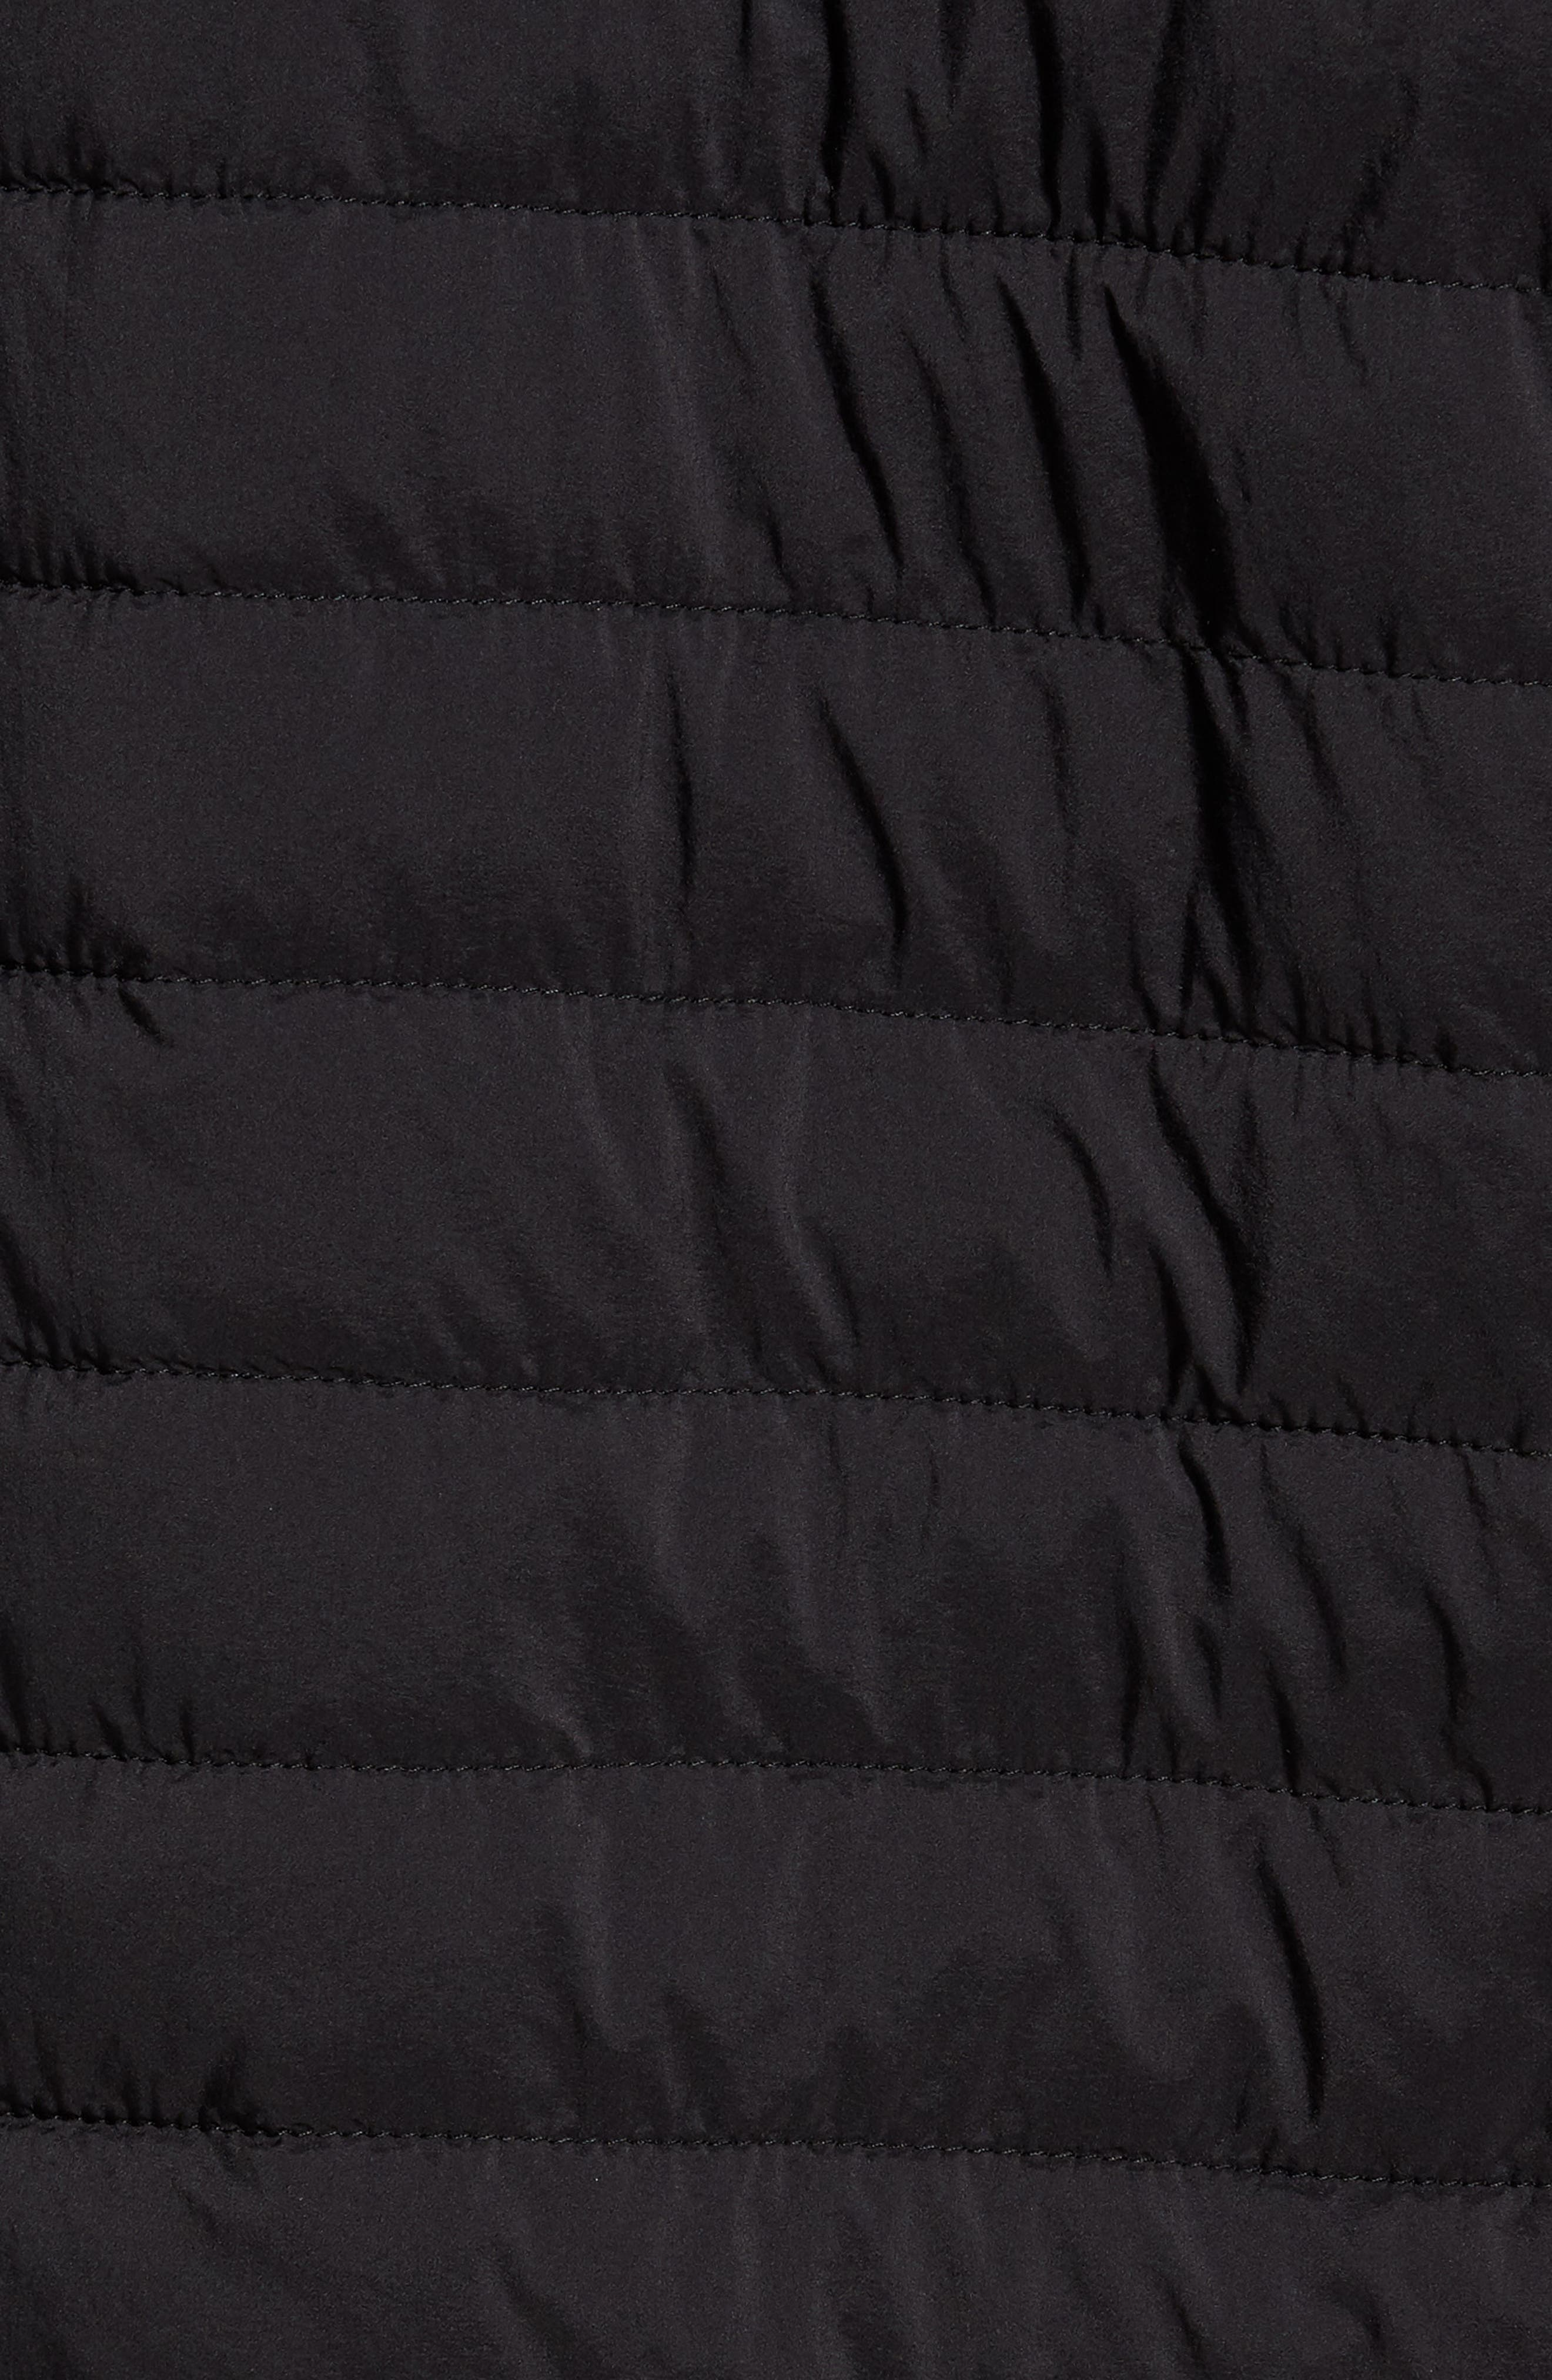 Tipped Quilted Jacket,                             Alternate thumbnail 5, color,                             Black